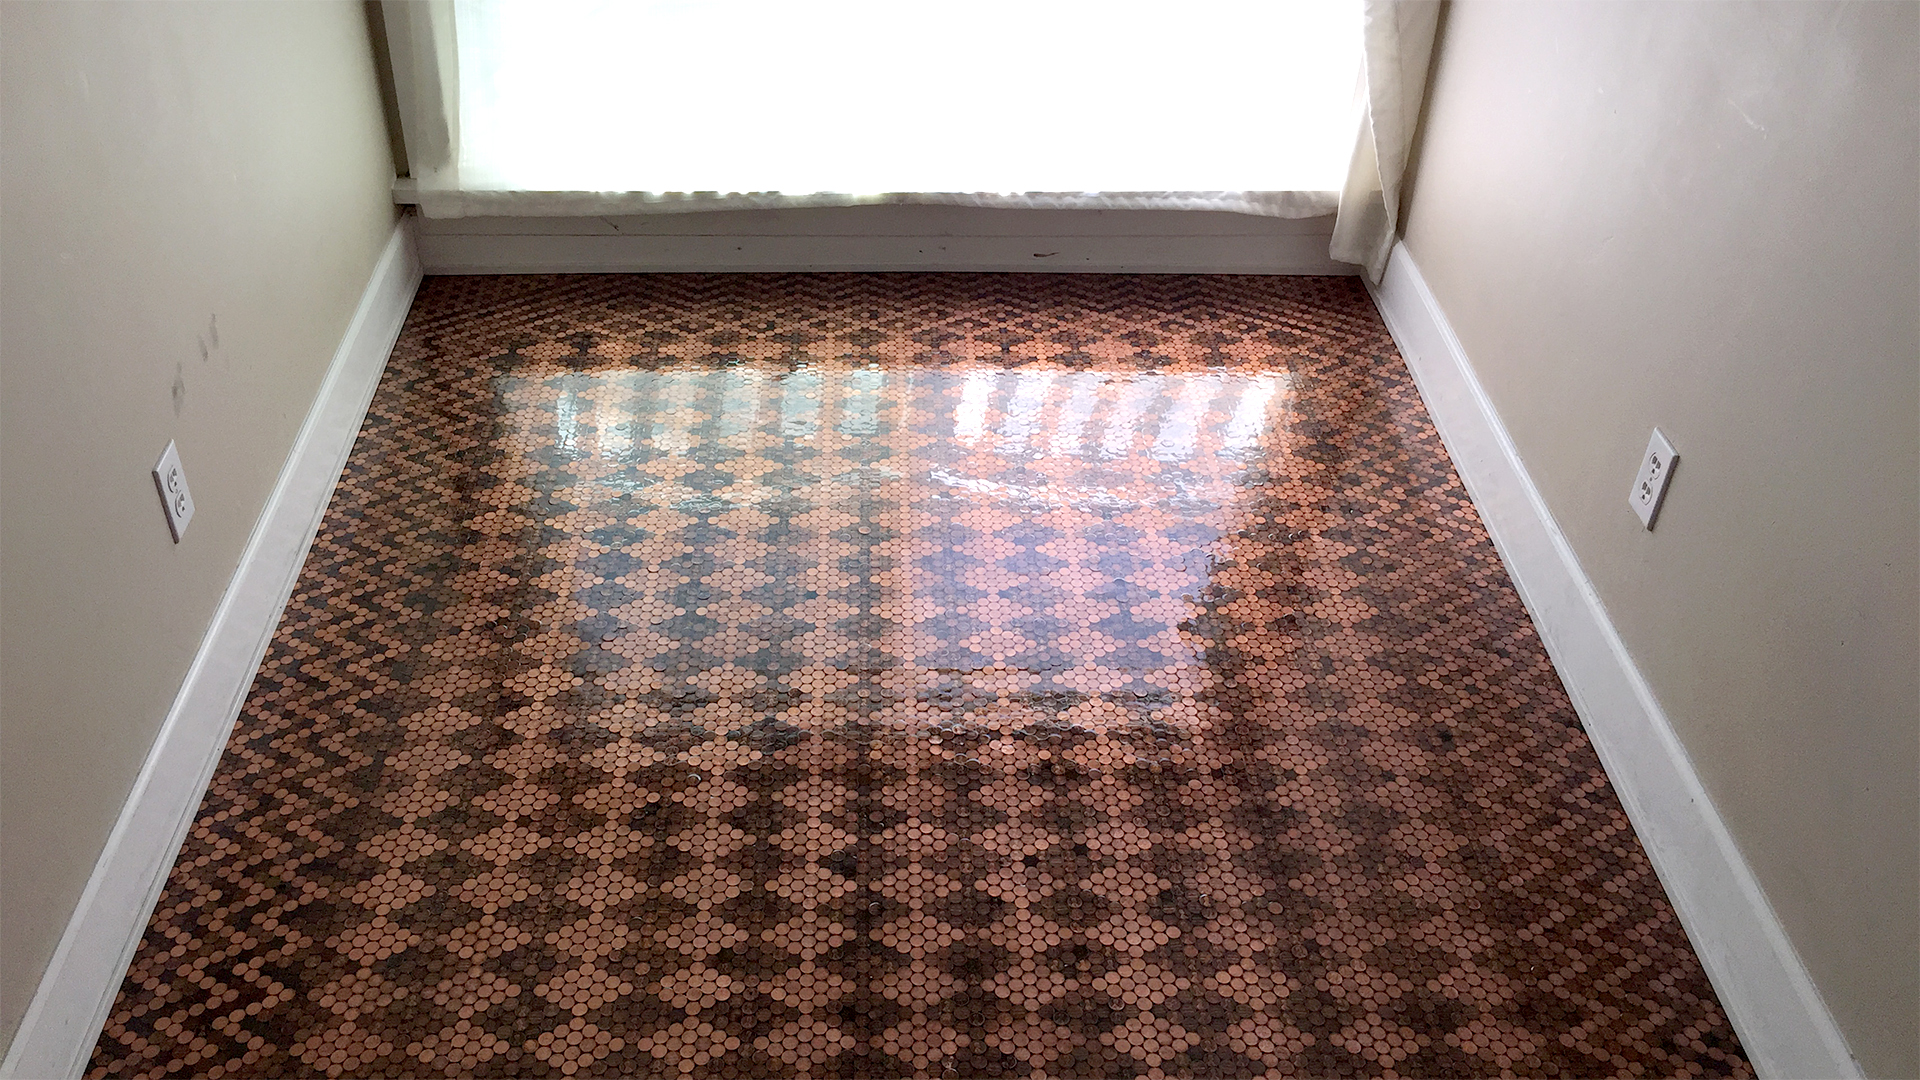 This DIY floor was made out of pennies  TODAYcom